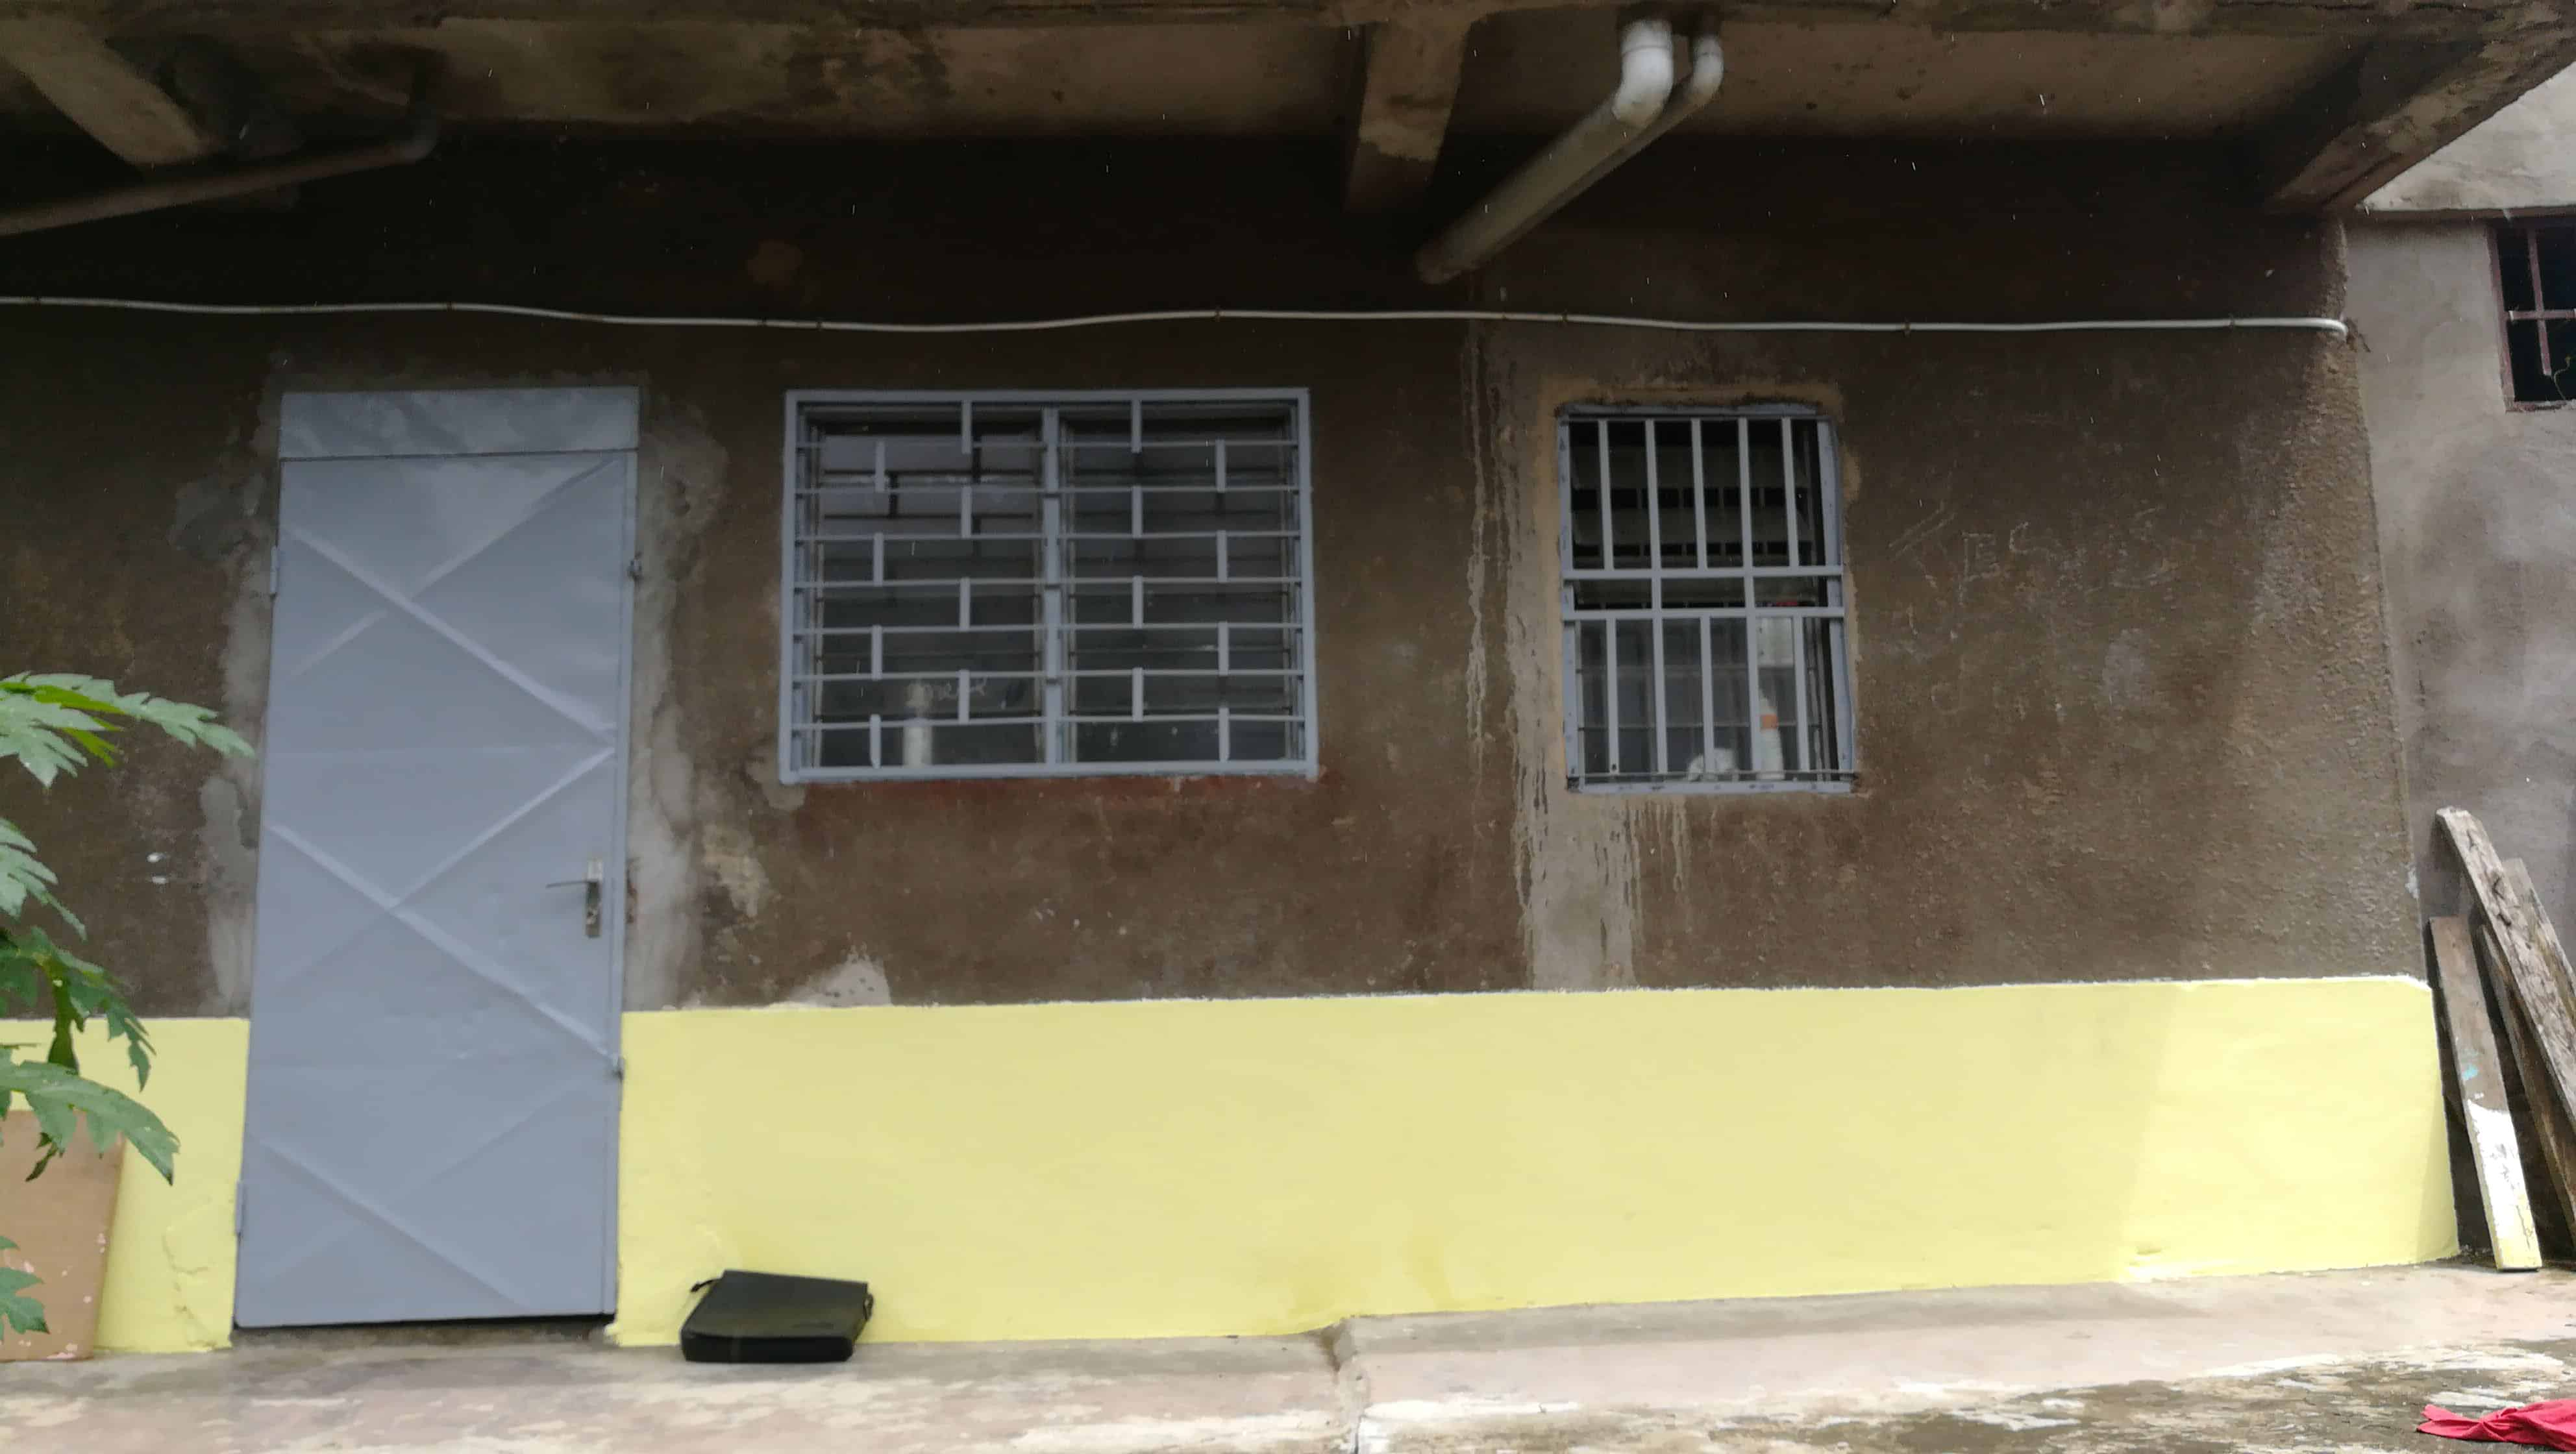 Apartment to rent - Douala, Malangue, Boulangerie malangue - 1 living room(s), 1 bedroom(s), 1 bathroom(s) - 40 000 FCFA / month